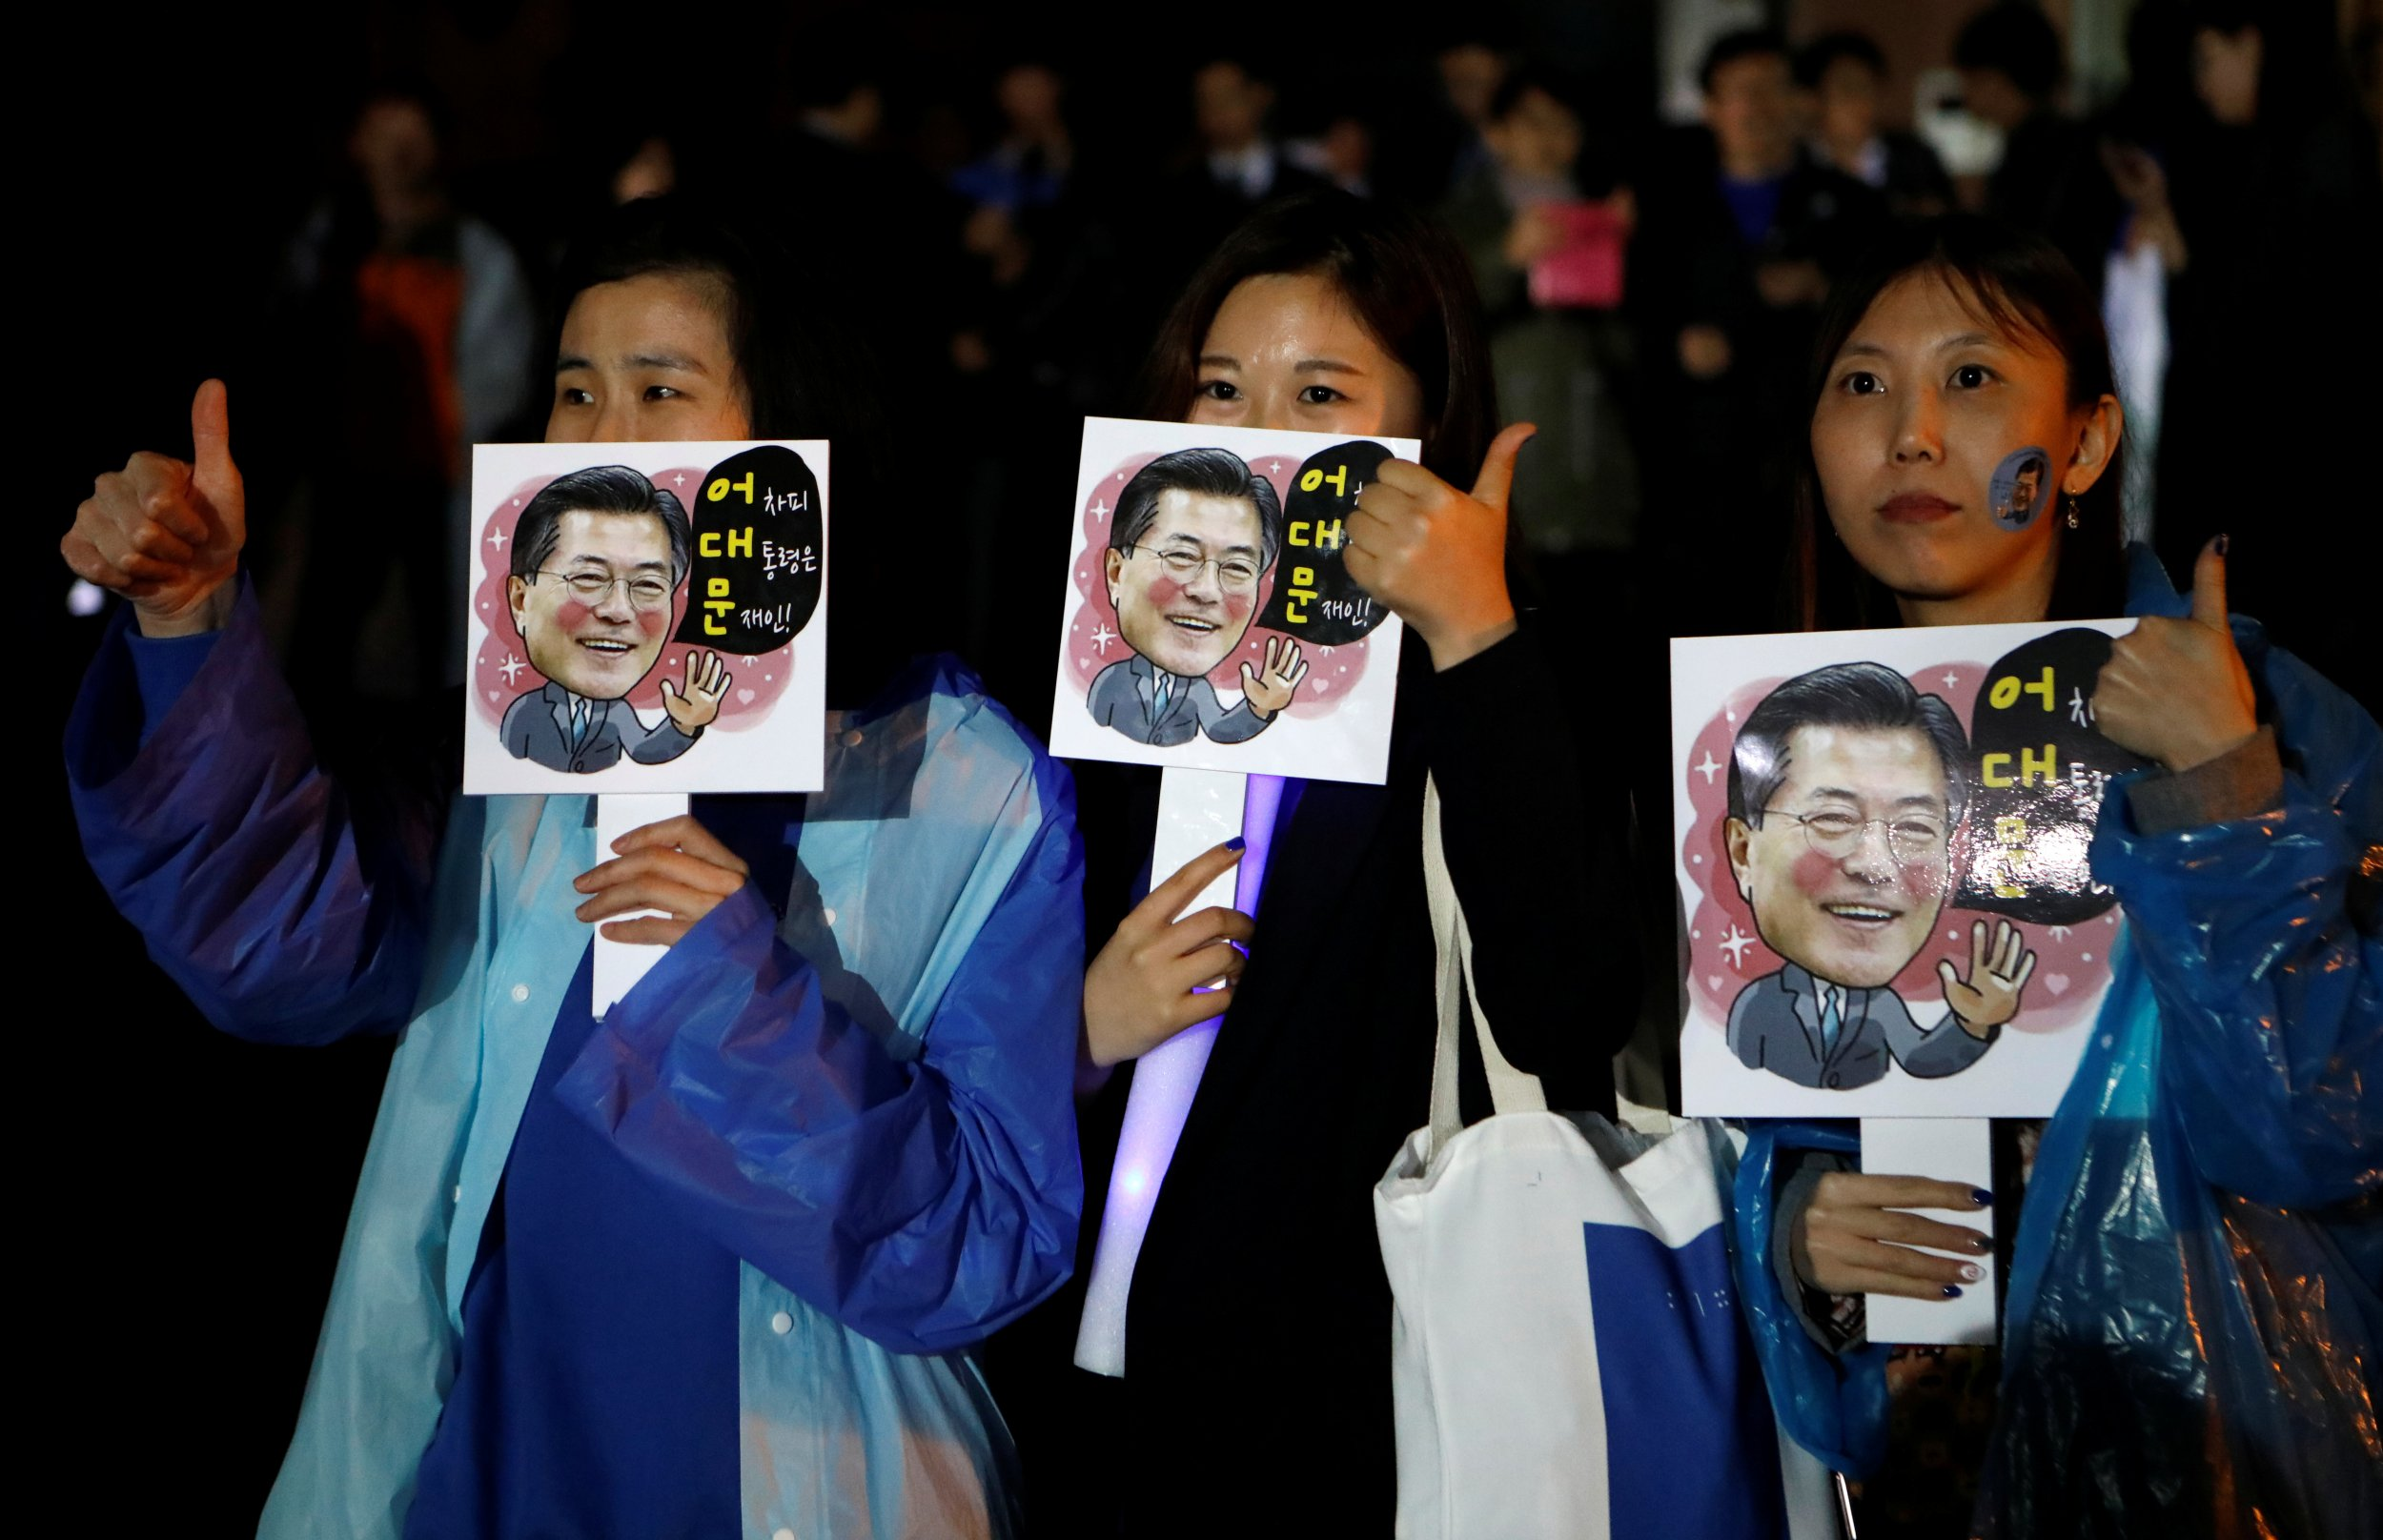 Moon Jae In supporters